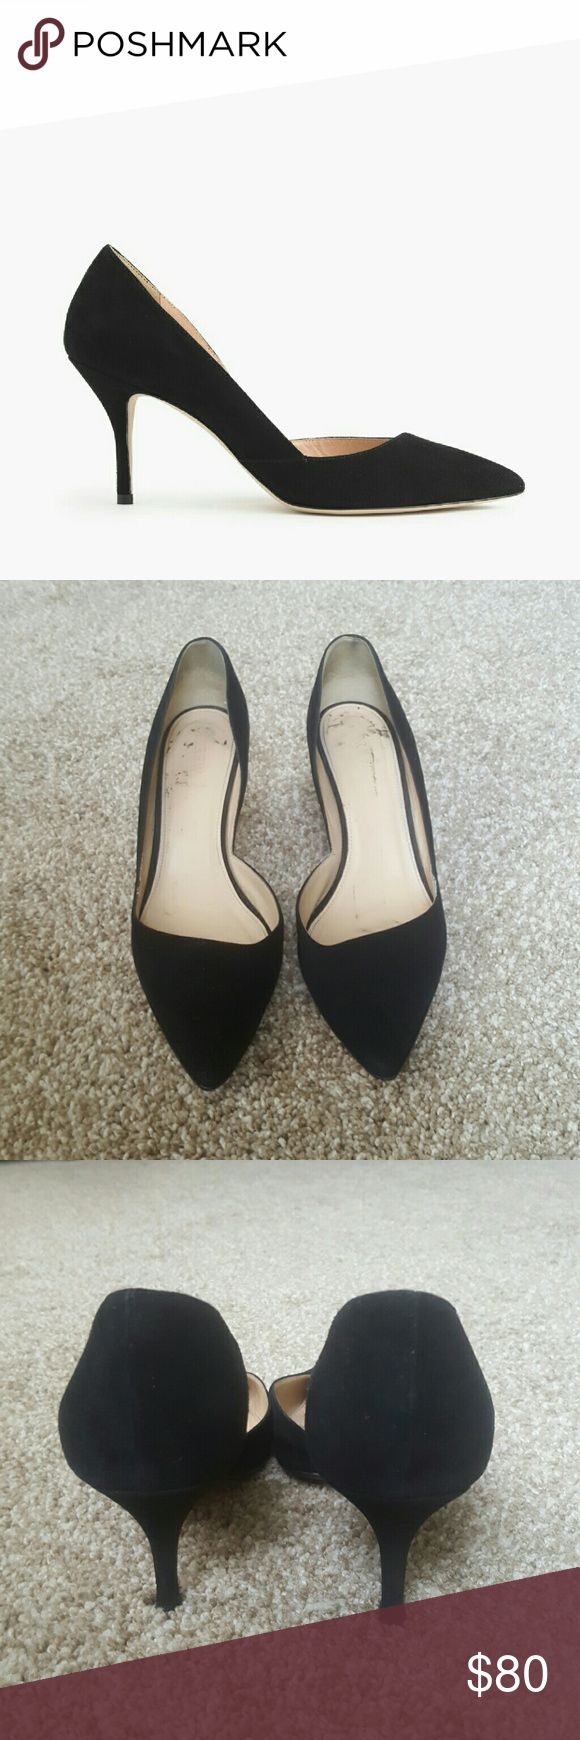 """J. Crew Colette Suede D'Orsay Pumps Good condition. Soles have been protected with an added layer, so they last longer. The heel area is stretched out, so this may fit someone with wide feet better. I am a true 8.5, and the shoe kept slipping off my foot as I walked. The suede is in great condition. This is a re-Posh.  A new take on an always-classic mid heel. We gave her a French name because the open d'Orsay shape makes her tres cool.  3 1/8"""" heel. Suede upper. Leather lining. Made in…"""